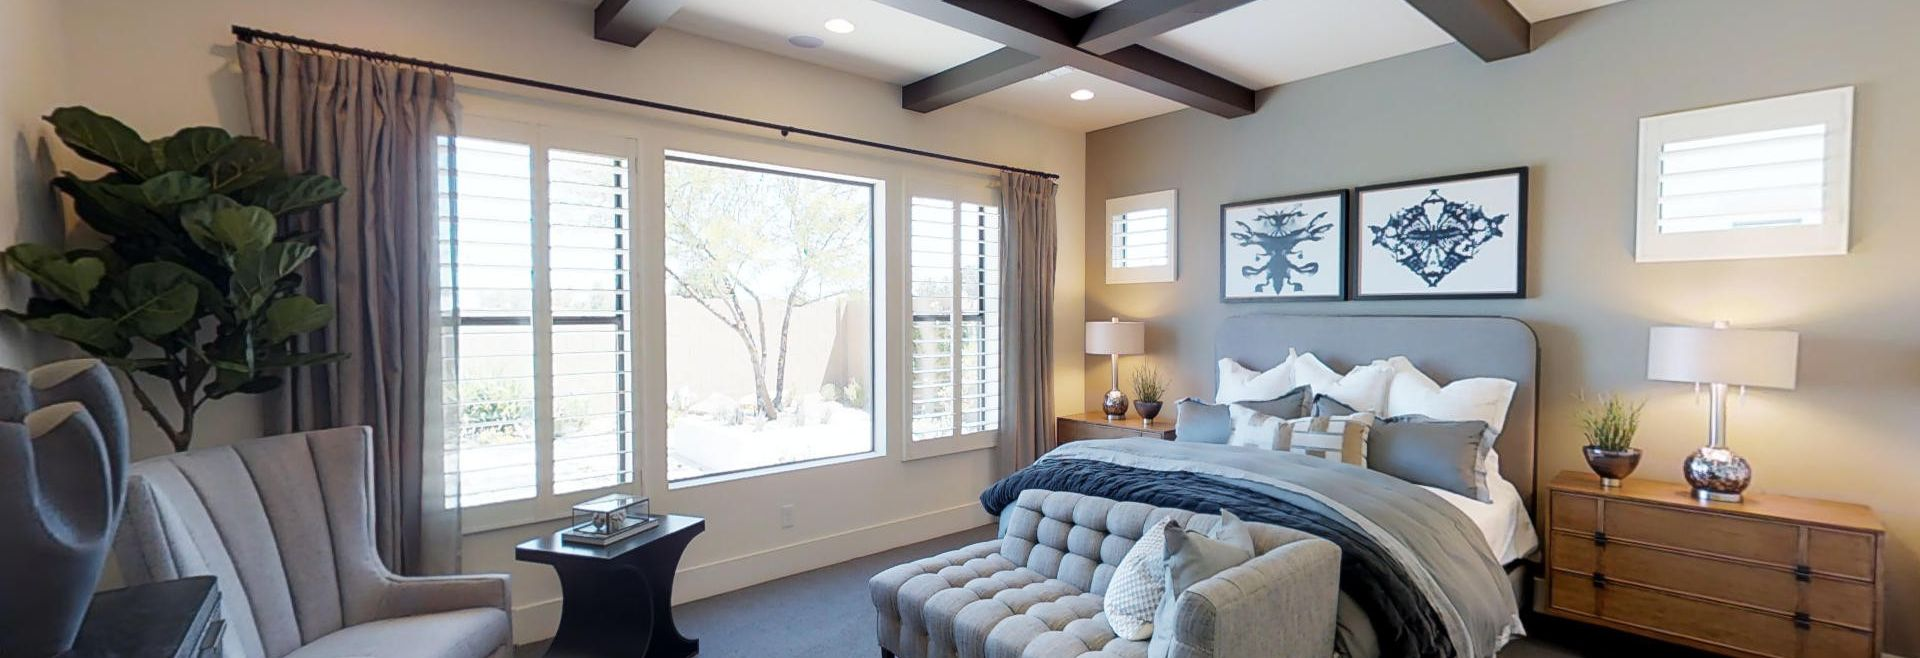 Plan 3 Master Bedroom with large window and beams on ceiling